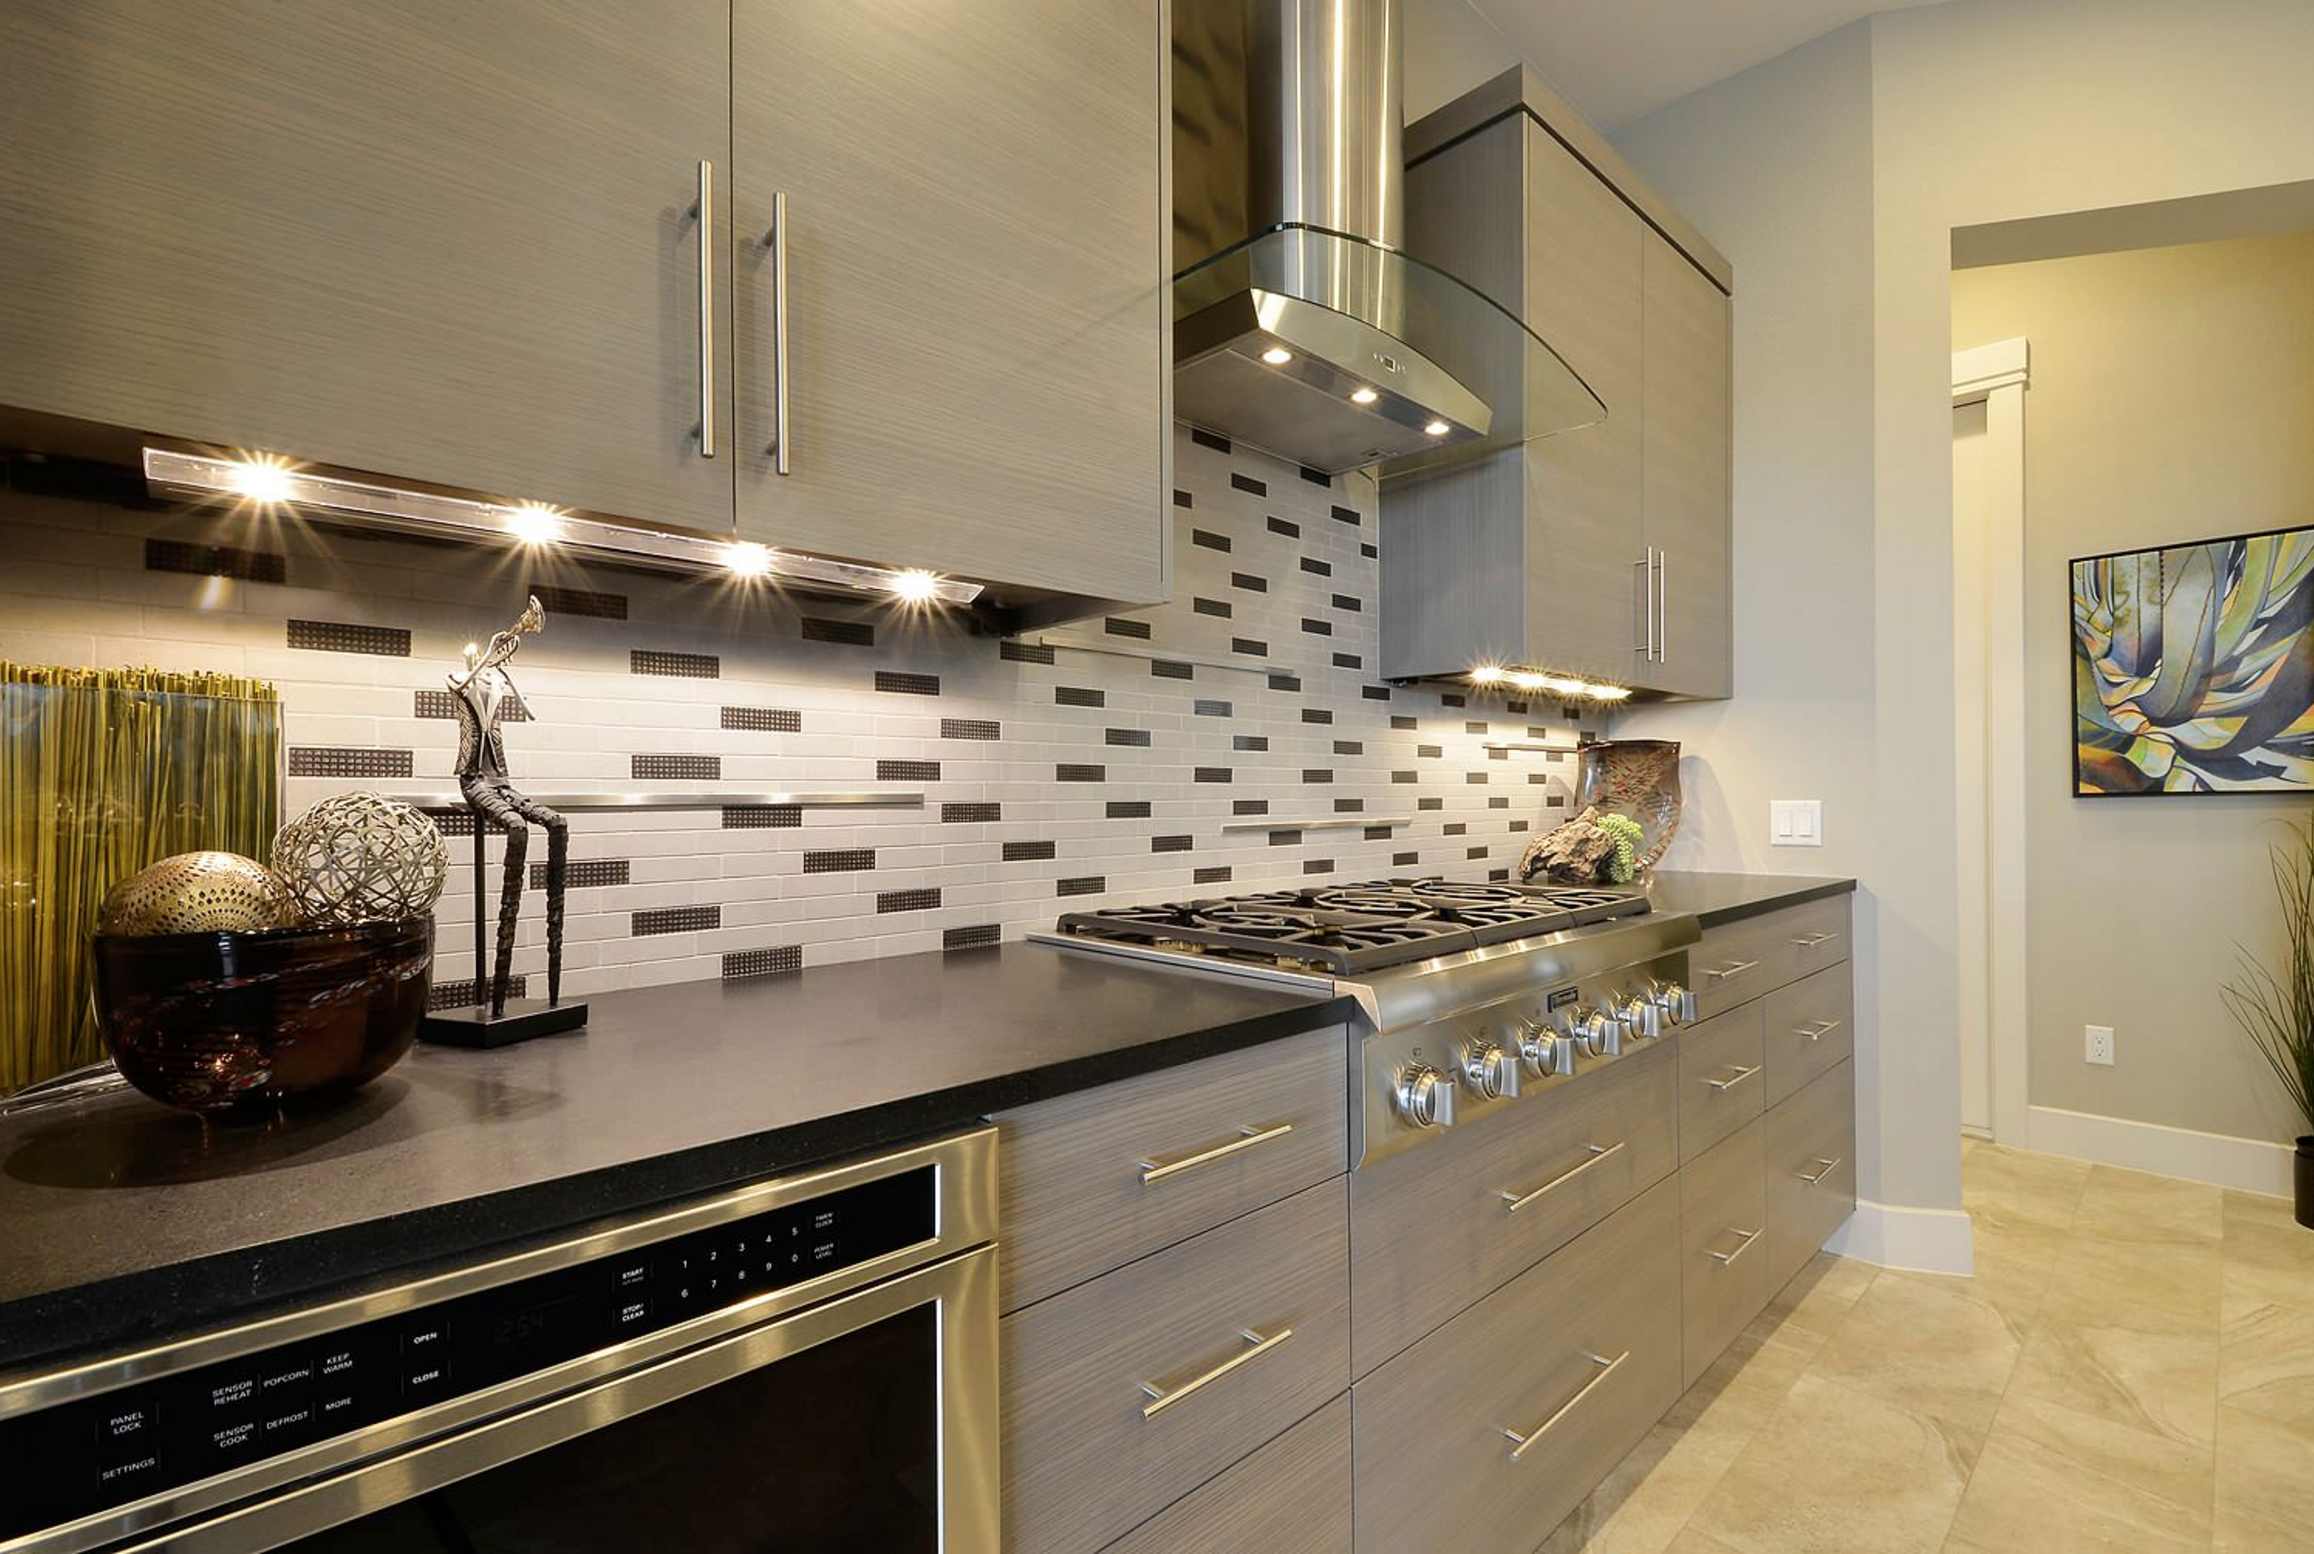 Low Voltage Light Tape Strips Are Used As Accent Pieces Below Cabinets Above Cabinets Inside Ca Interior Design Kitchen Kitchen Trends Kitchen Design Trends